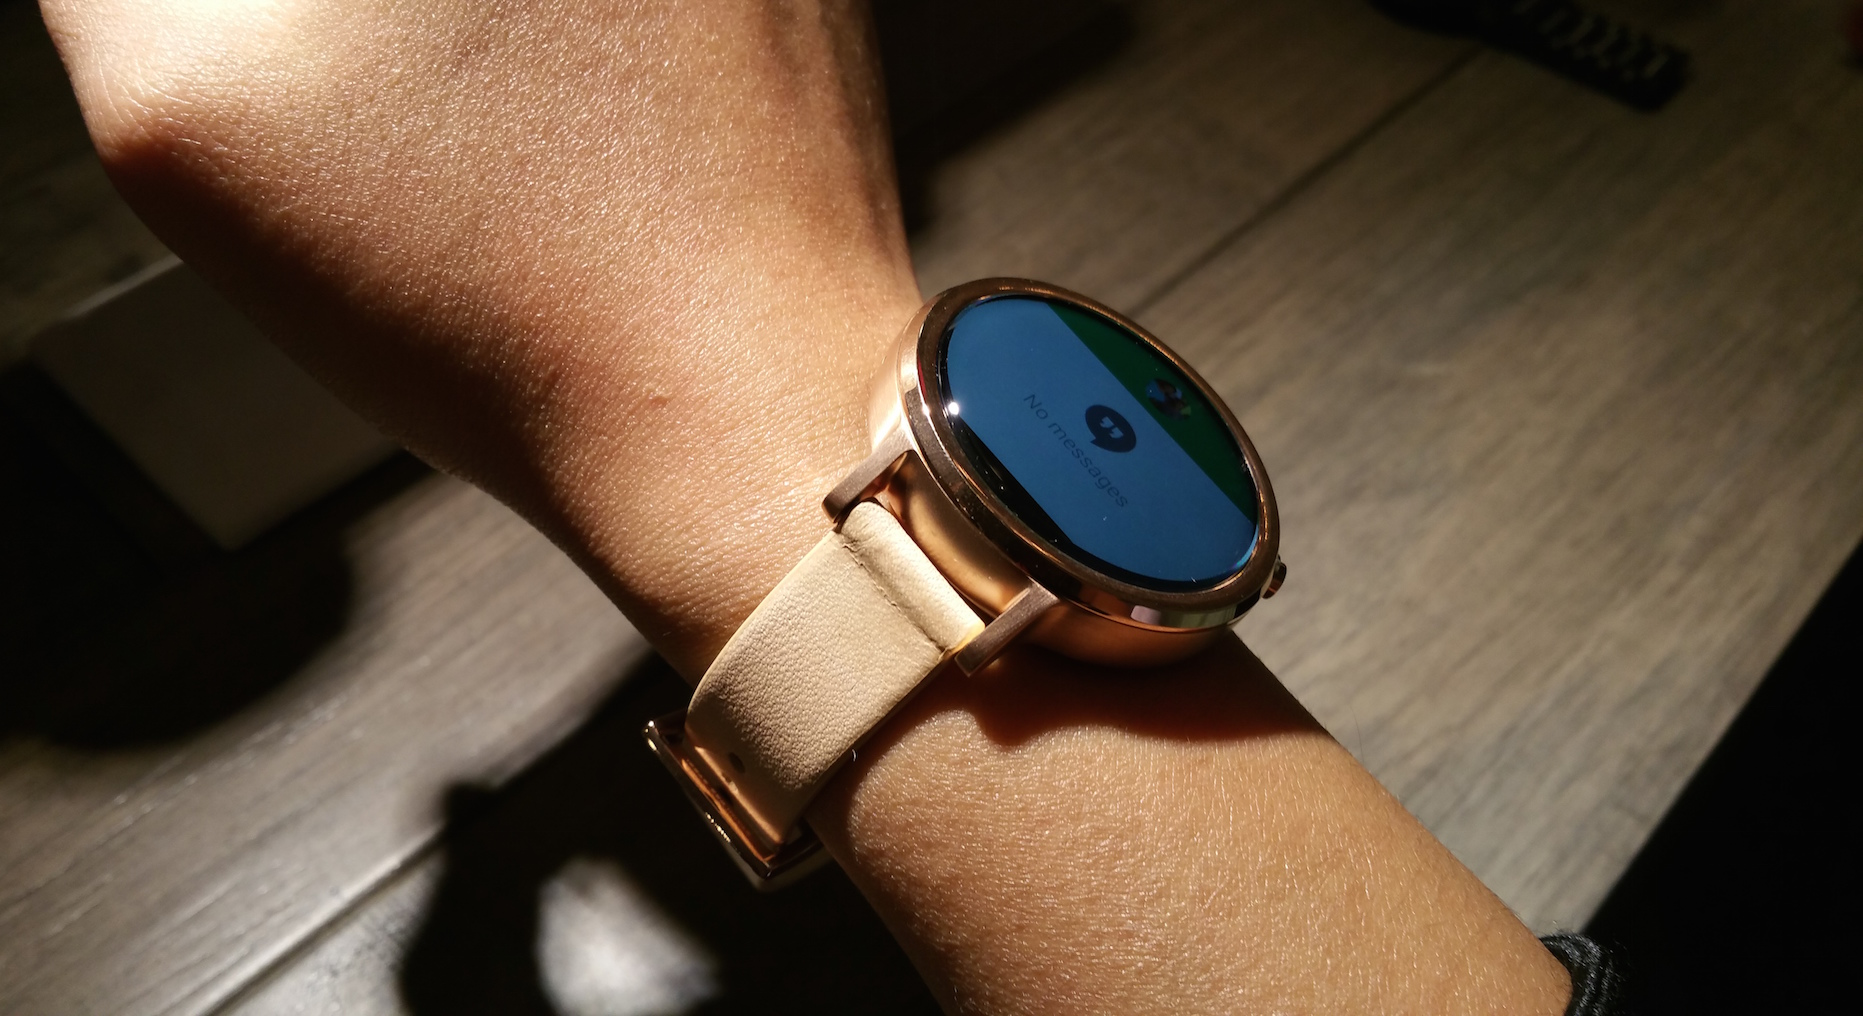 The thin leather bands look much better on smaller wrists.